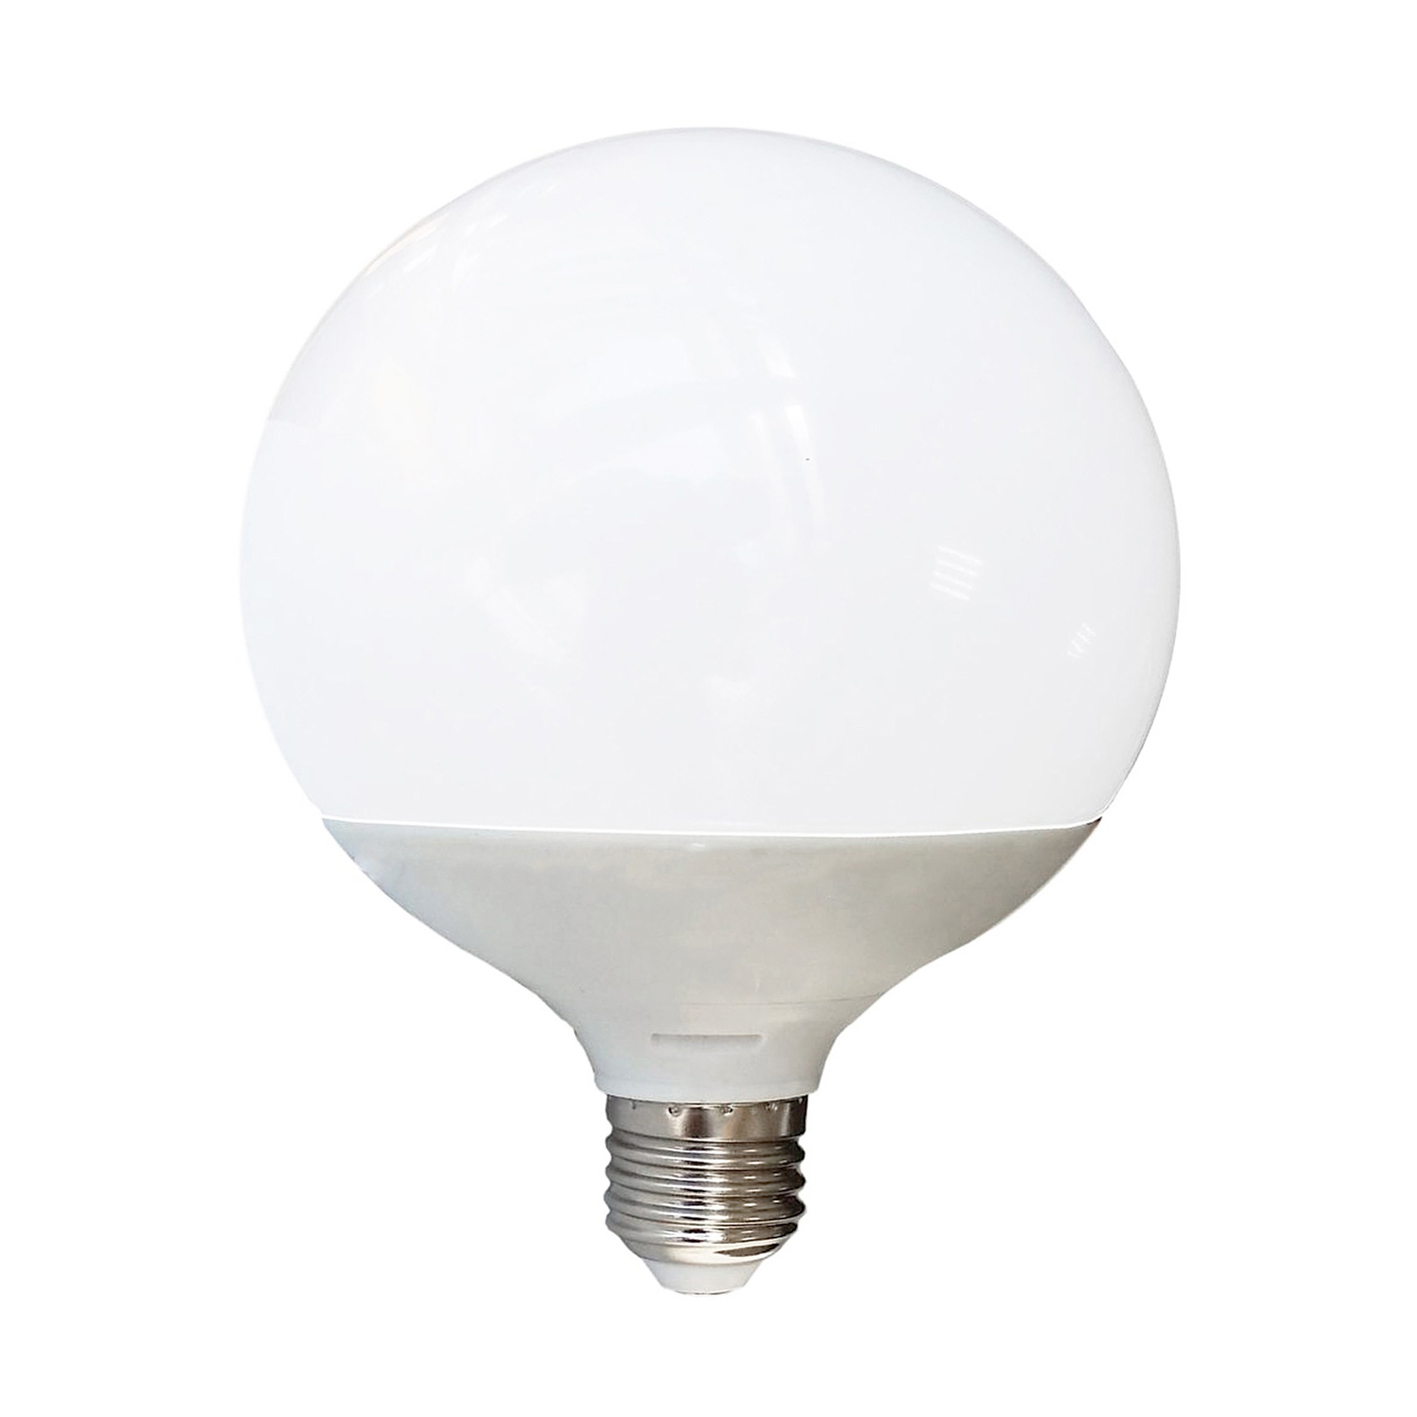 LED bulb 20W G120 big E27 screw-in Globe-G120-20W